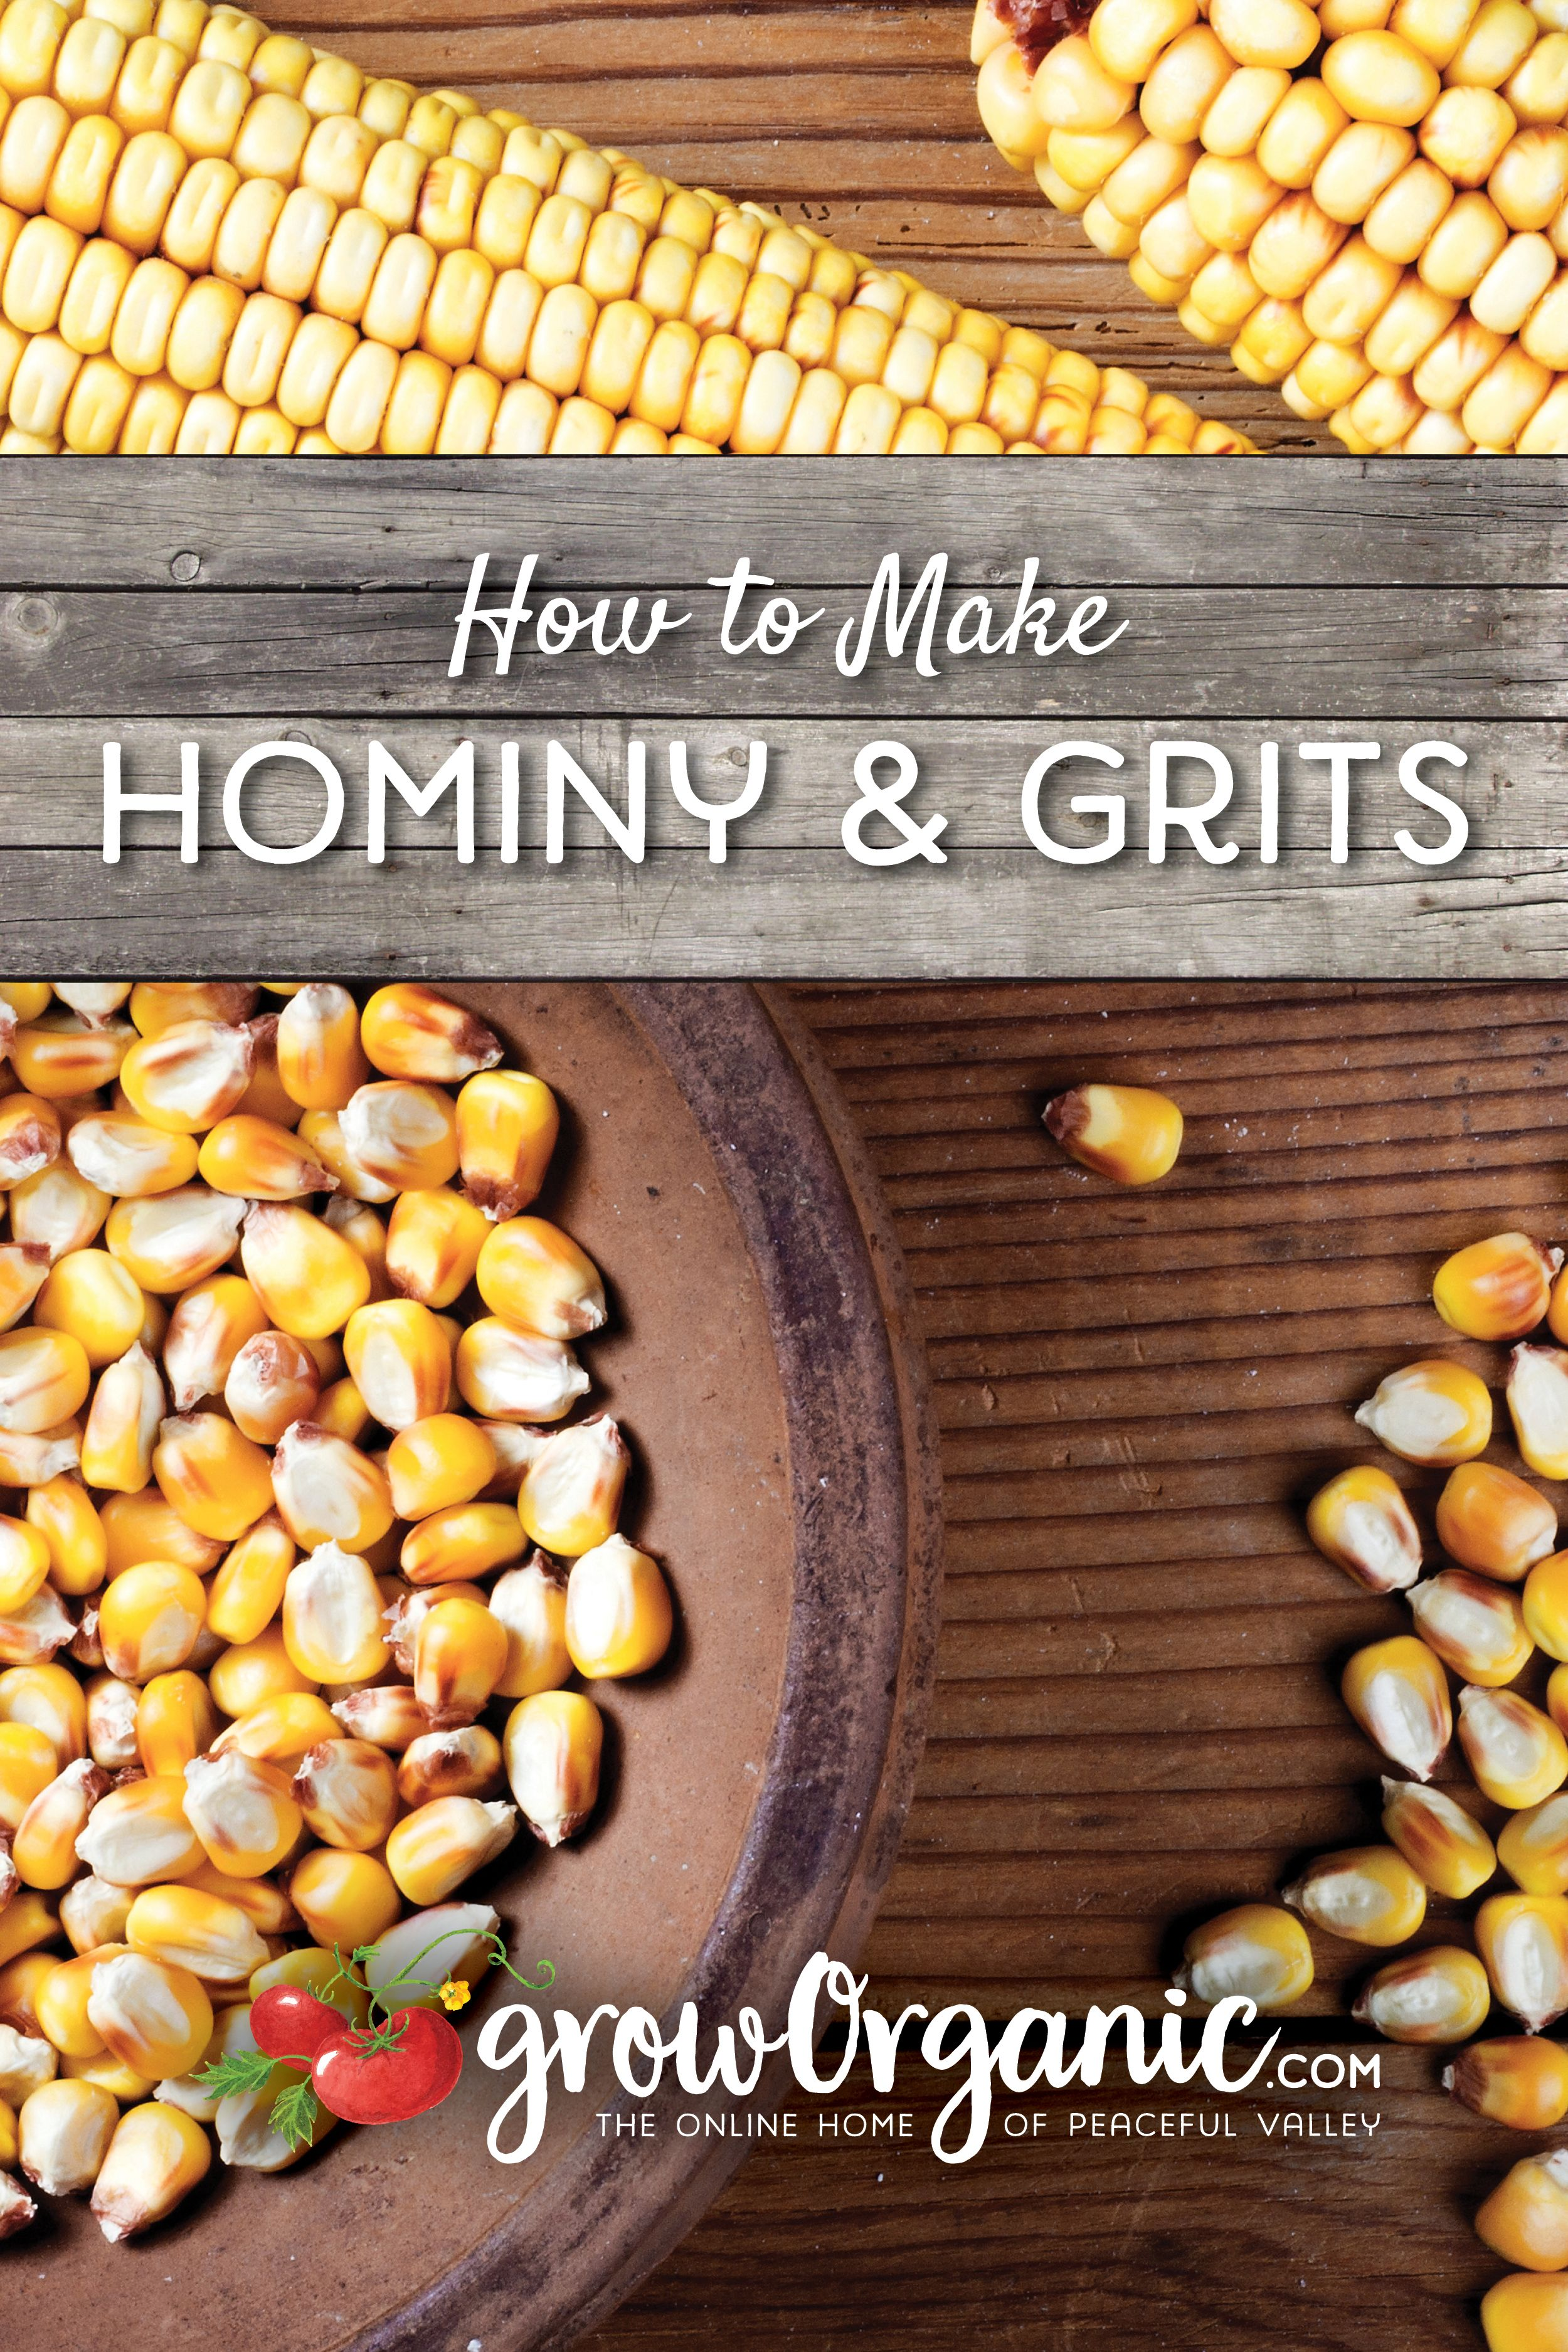 How to Make Hominy and Grits Hominy grits, Hominy, Grits